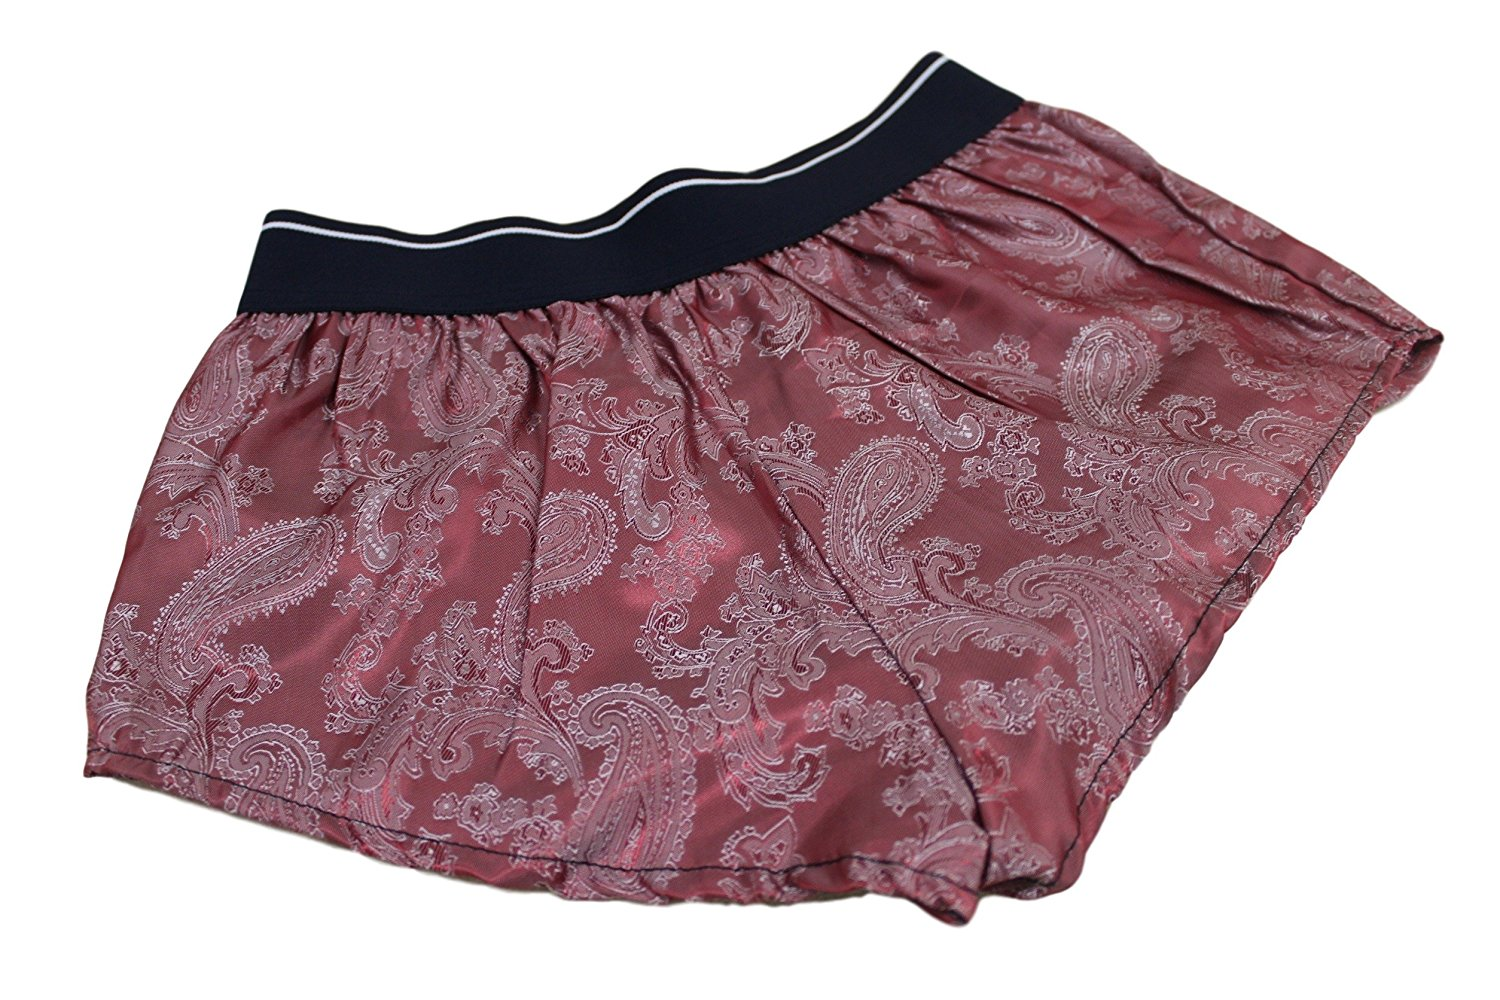 bc46b85e132 Get Quotations · woman s silk paisley luxury classic shorts french knickers  Made in France